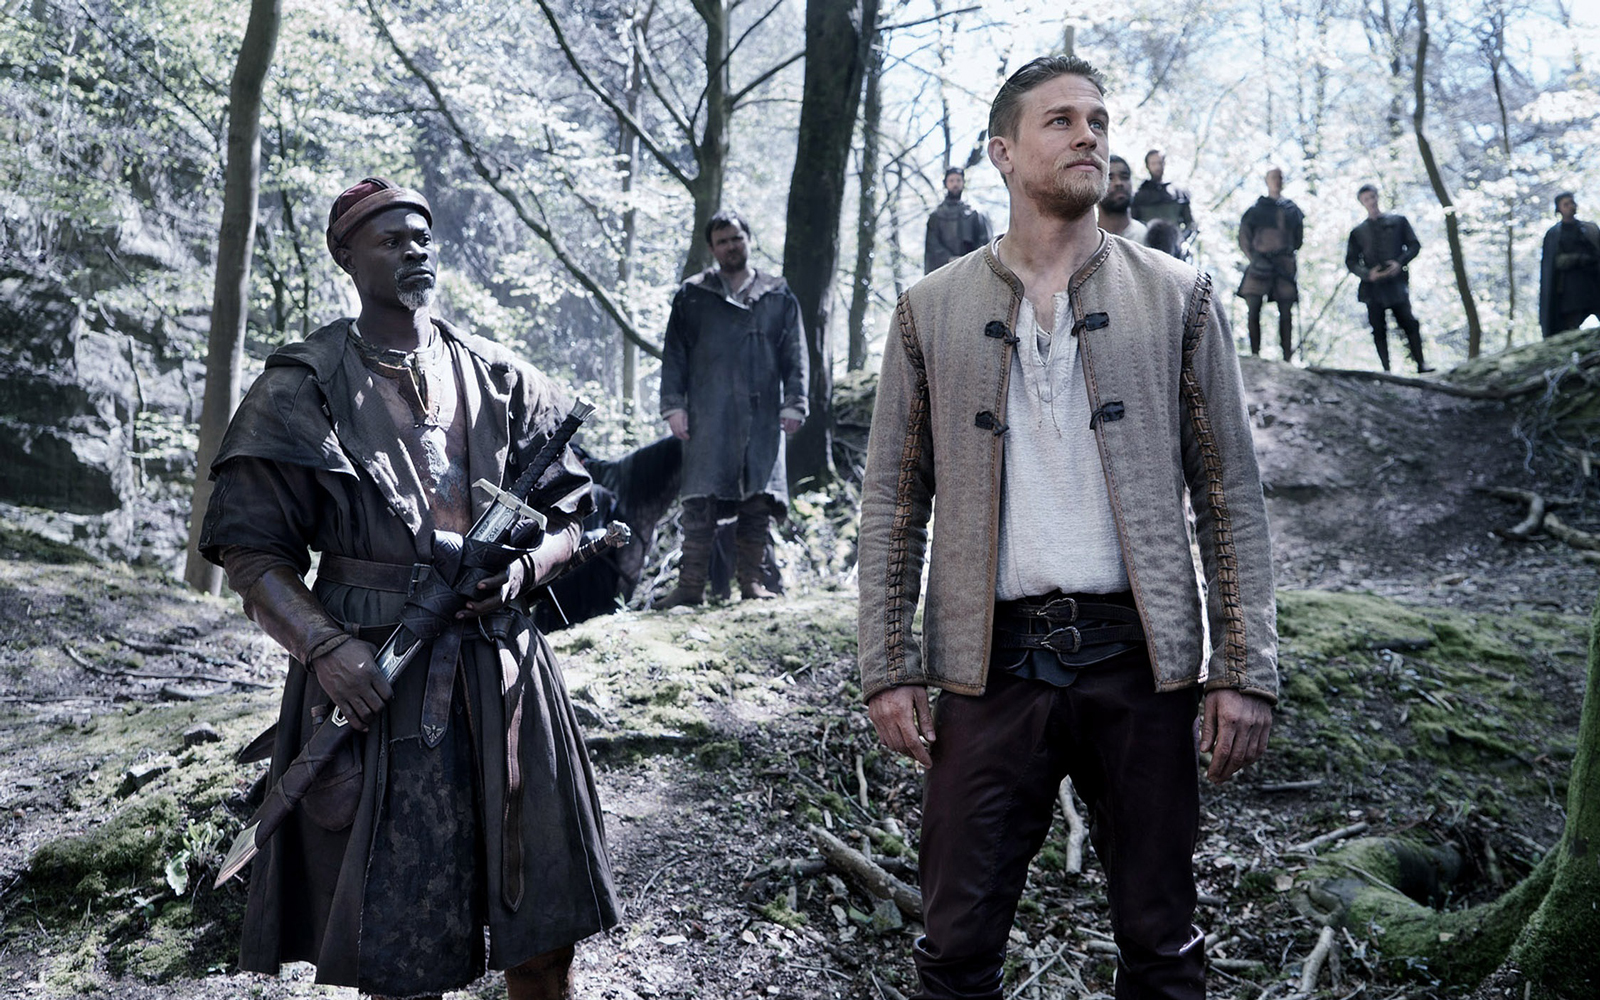 King Arthur: Legend of the Sword  stars Charlie Hunnam, Jude Law, Astrid Berges-Frisbey, and Djimon Hounsou.